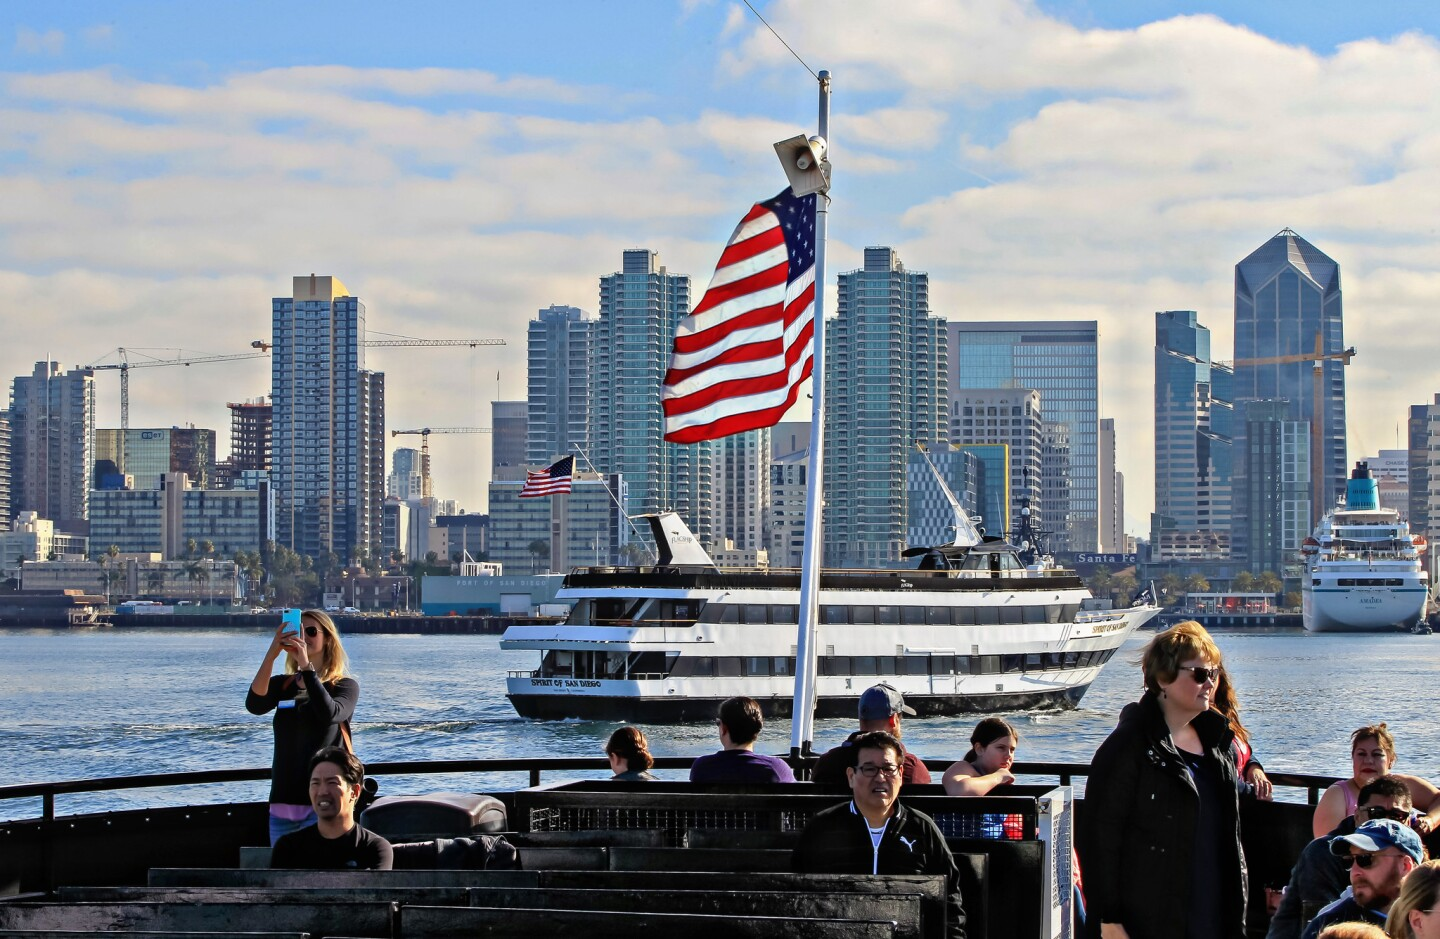 Passengers enjoy the skyline as they leave on a whale watching tour presented by Birch Aquarium and Flagship Cruises.